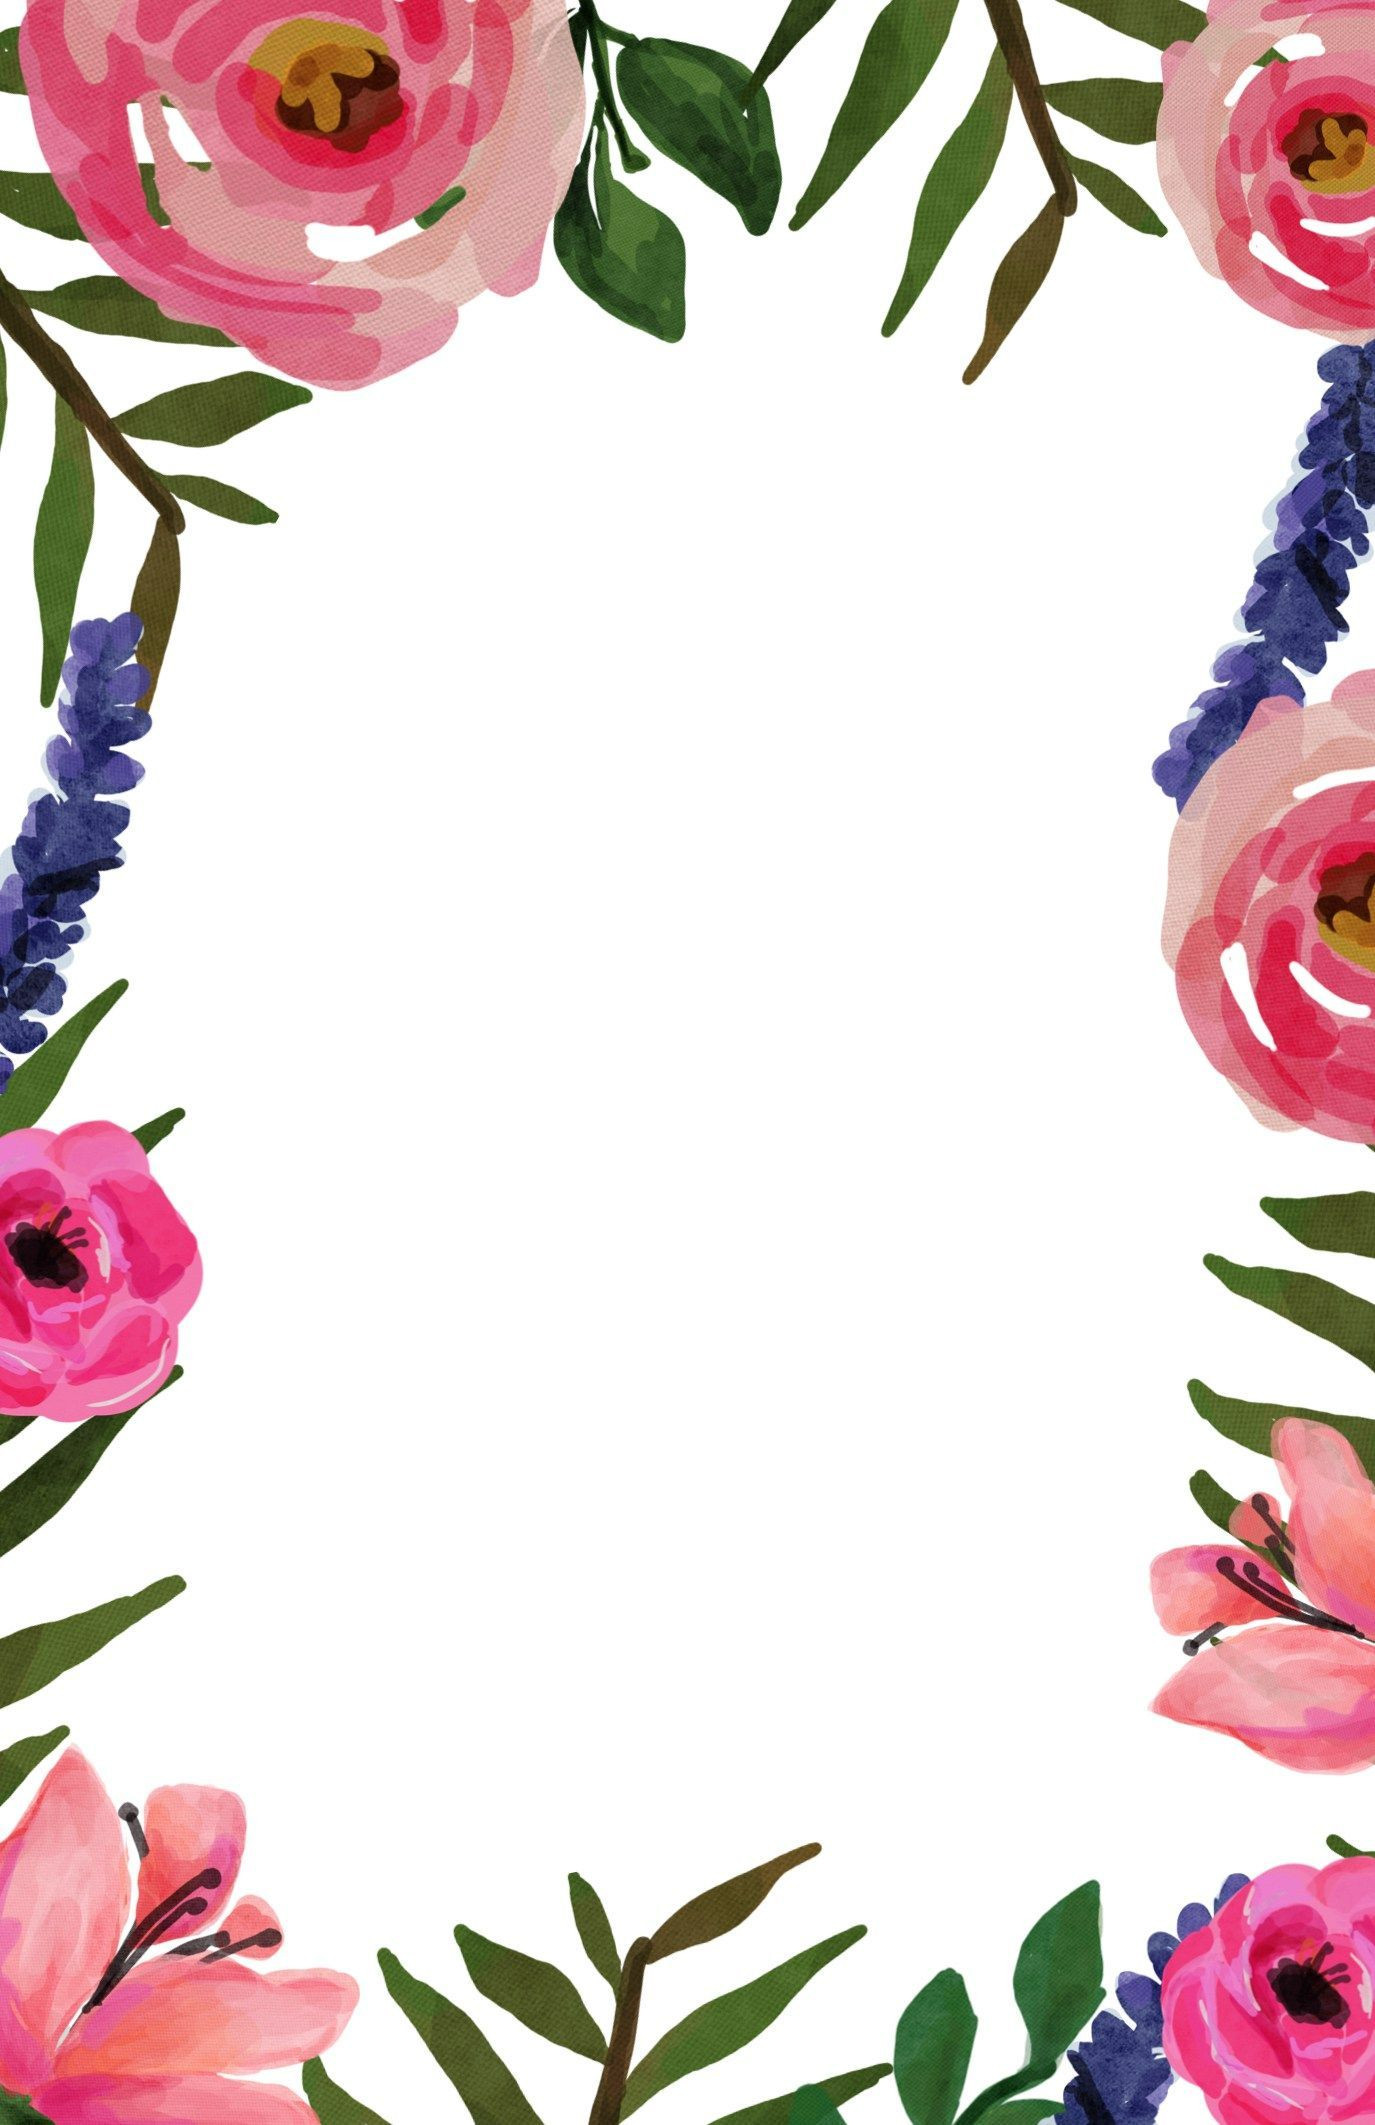 Watercolor Floral Border Paper Printable At Getdrawings Com